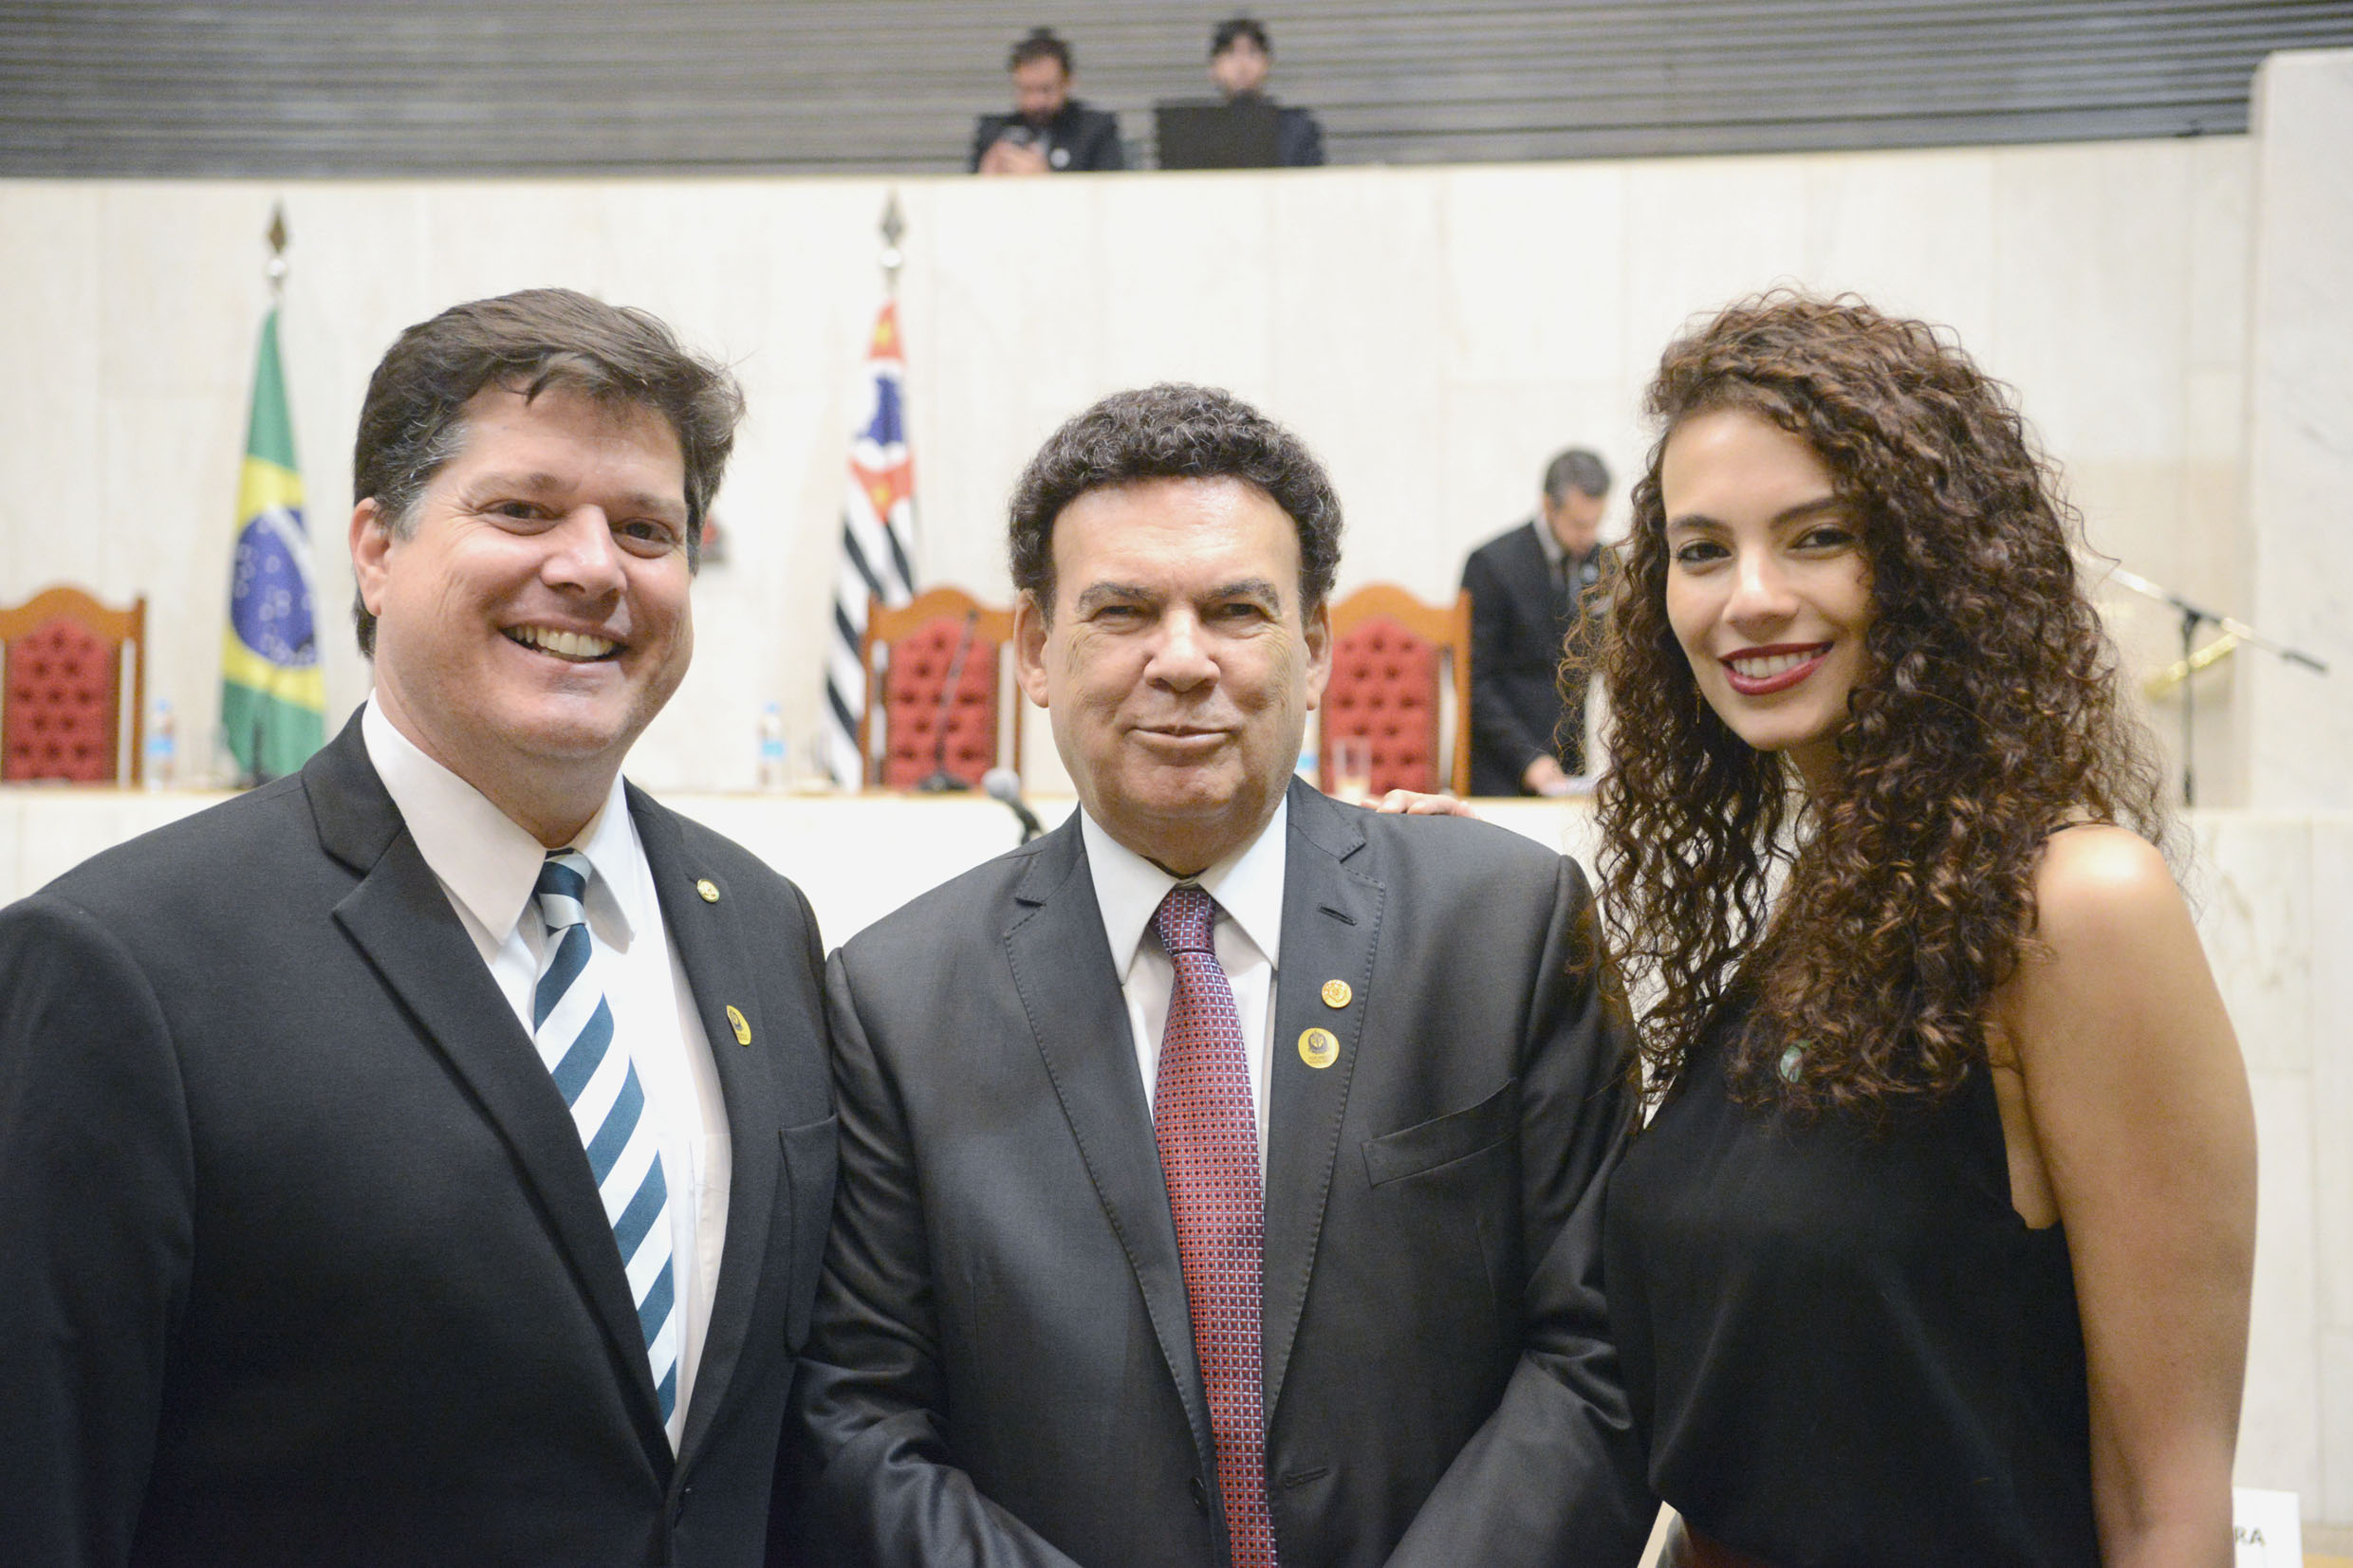 Campos Machado (ao centro)	<a style='float:right' href='https://www3.al.sp.gov.br/repositorio/noticia/N-03-2019/fg231675.jpg' target=_blank><img src='/_img/material-file-download-white.png' width='14px' alt='Clique para baixar a imagem'></a>